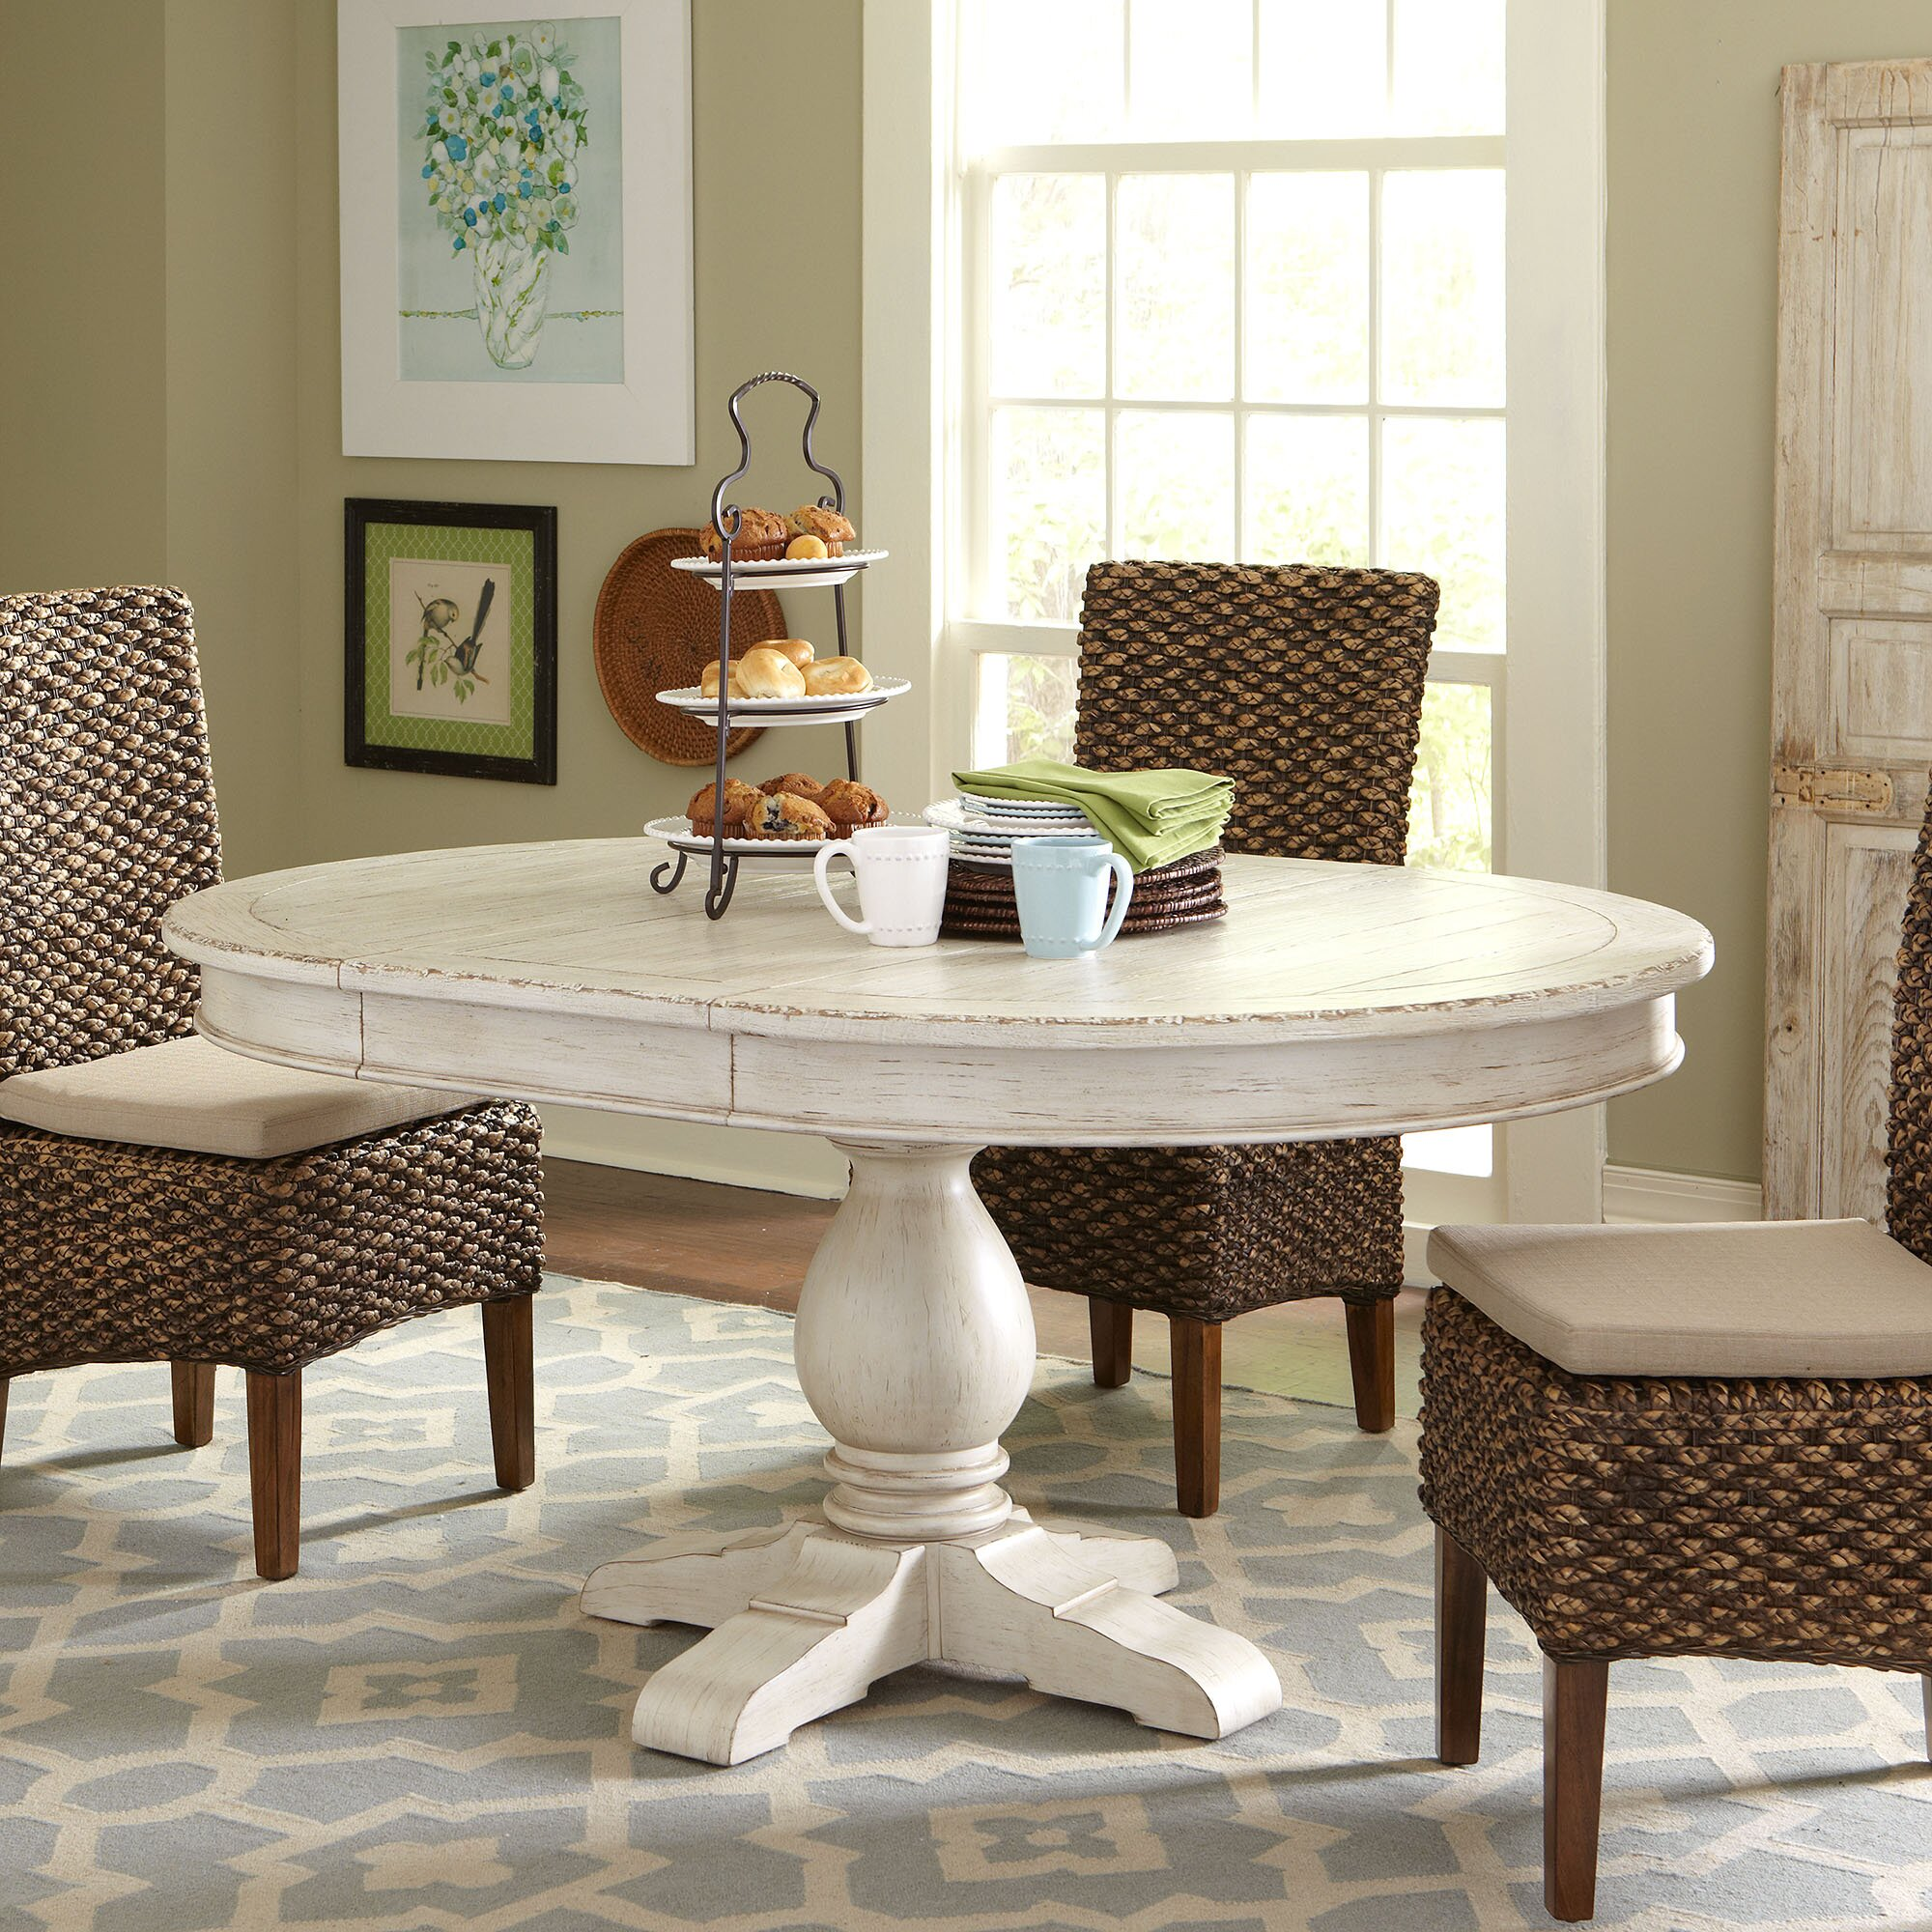 Extending Outdoor Dining Table Birch Lane Clearbrook Round Extending Dining Table Reviews